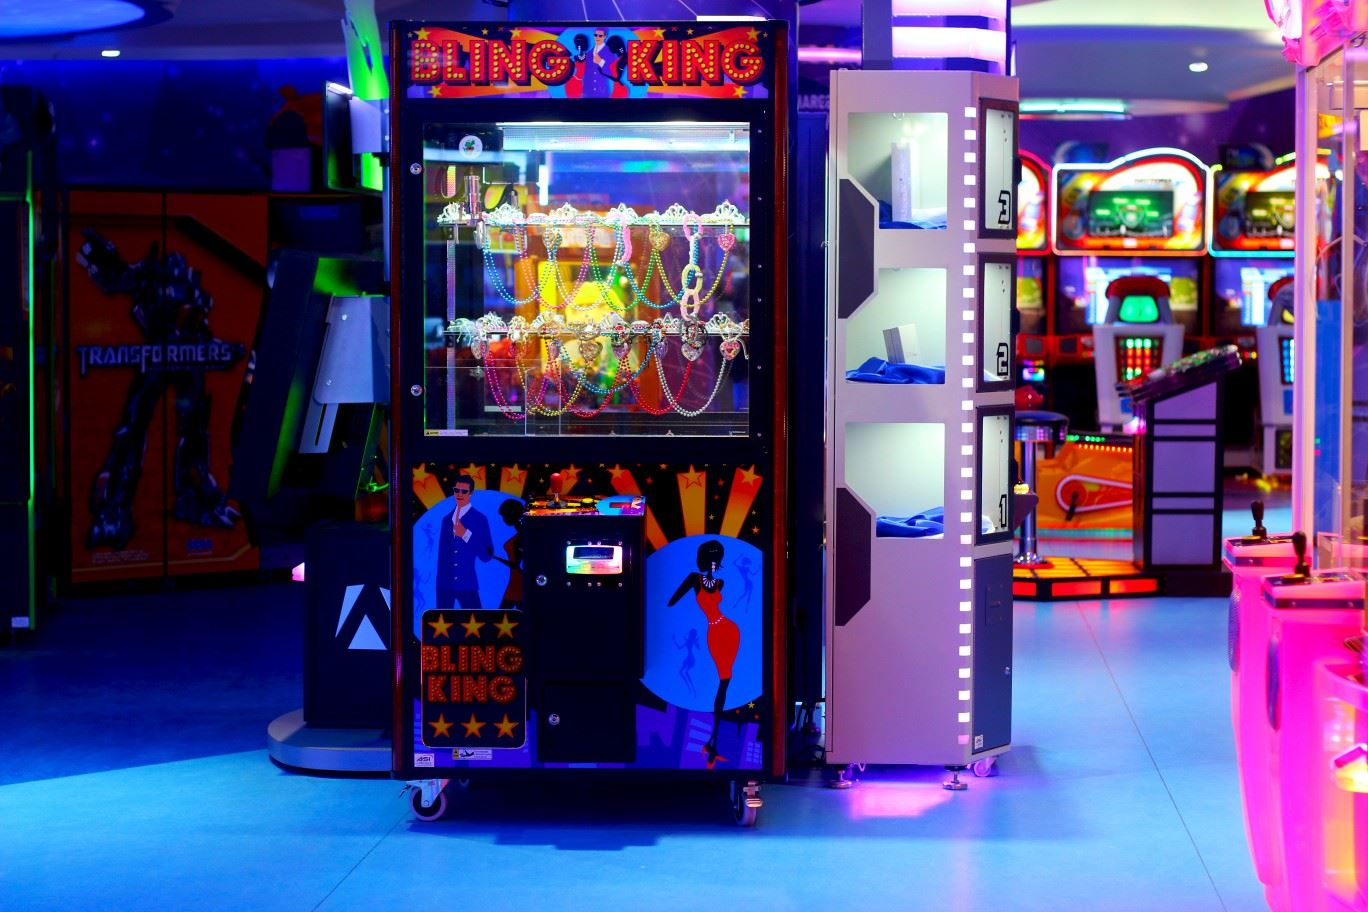 Bling King at Magic Planet